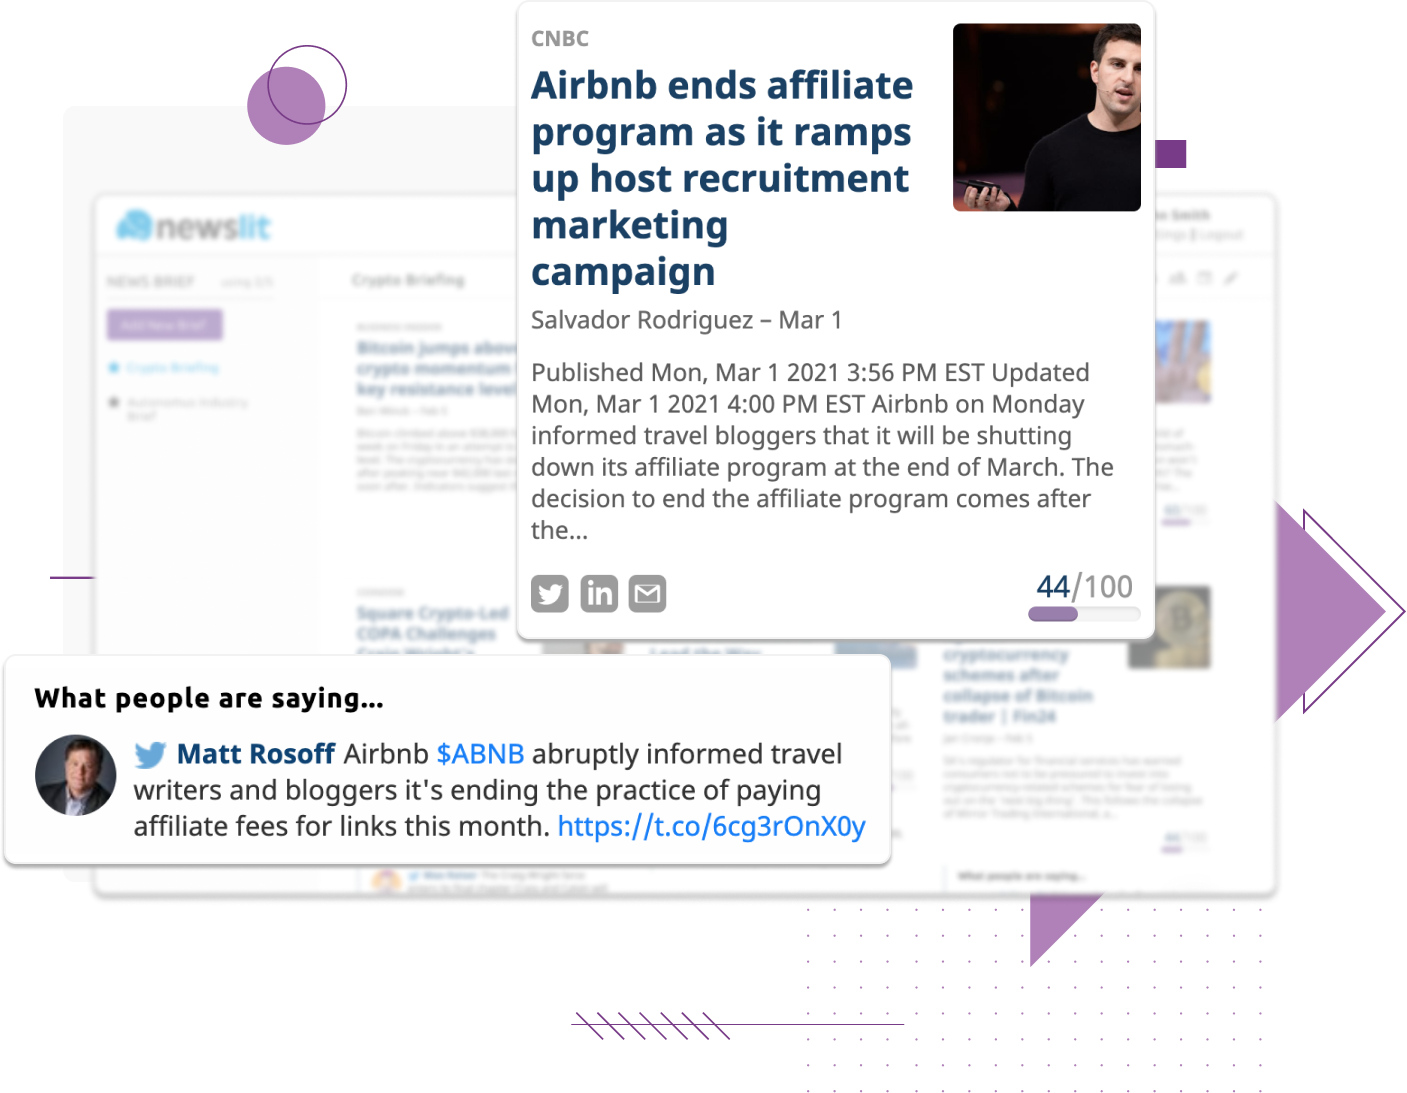 See the news real-time in your dashboard and discover great content - image